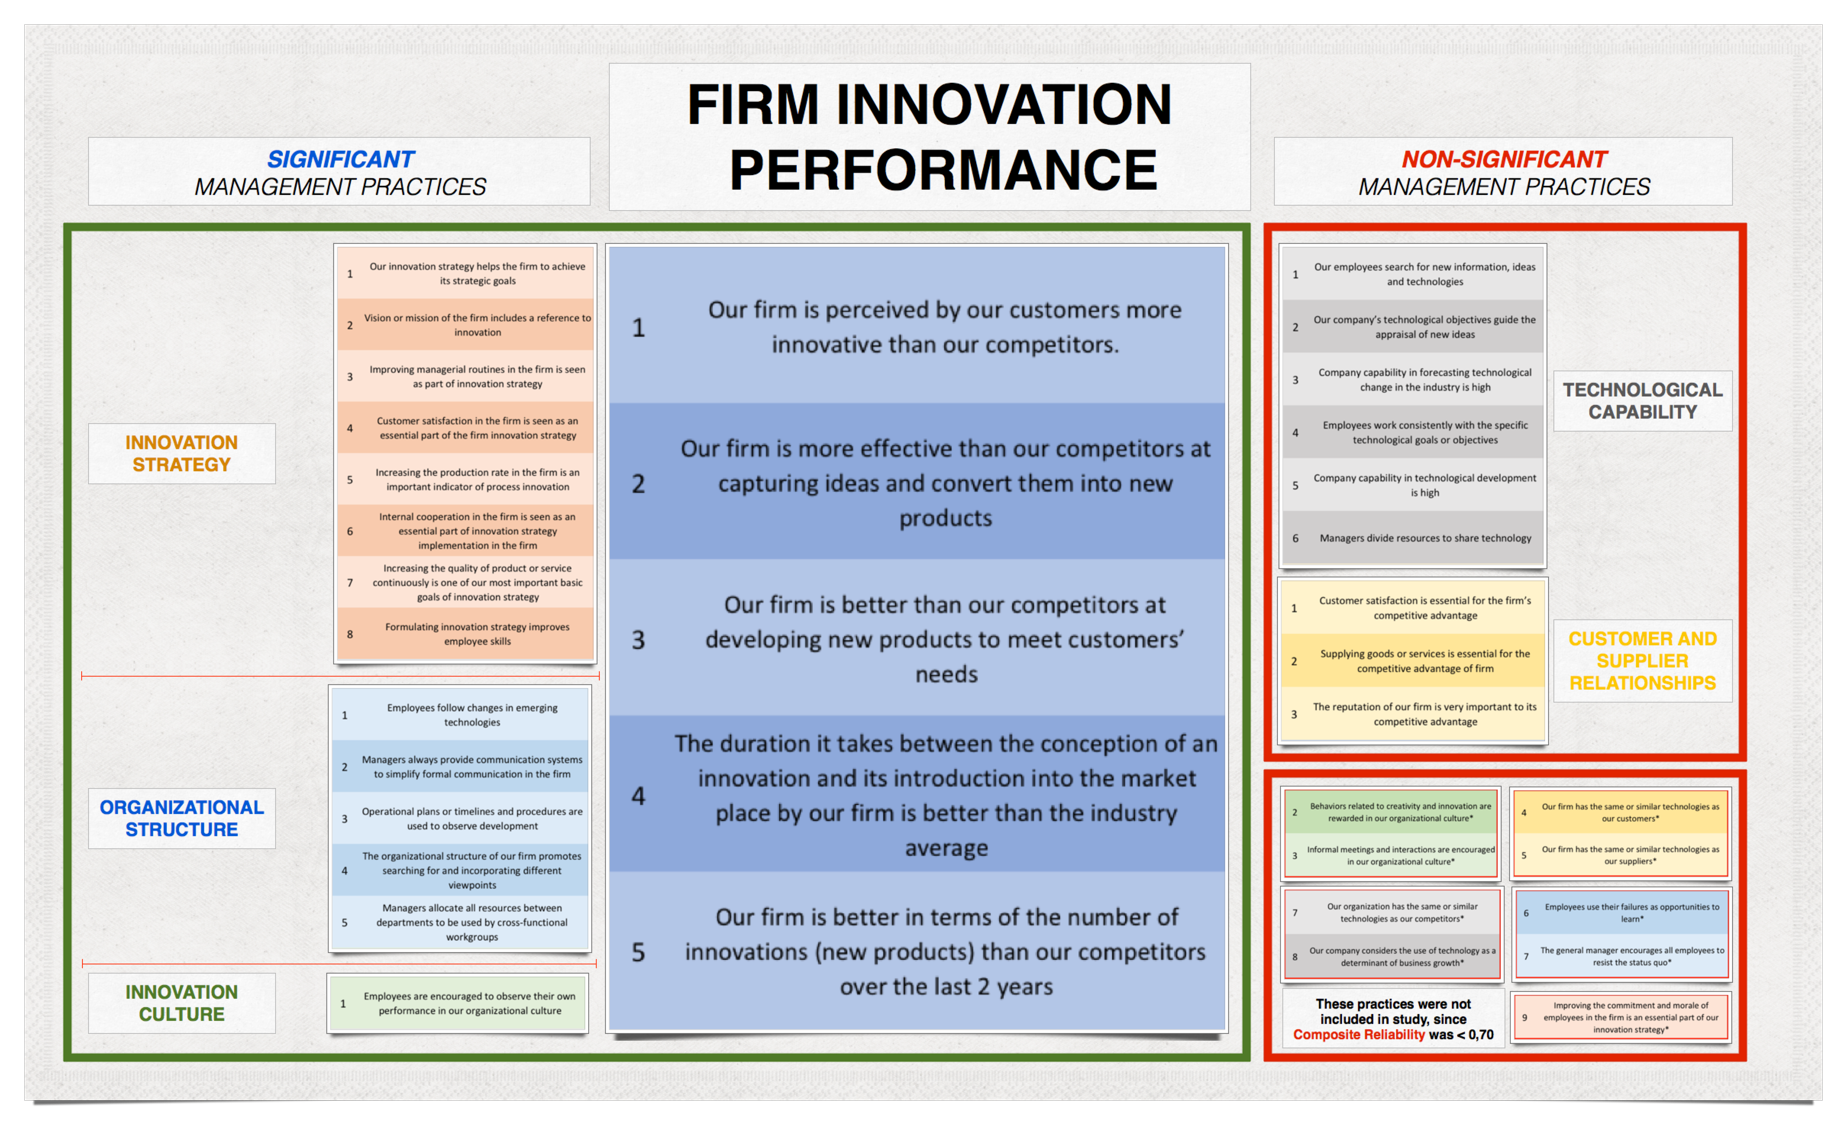 Firm Innovation Performance Results